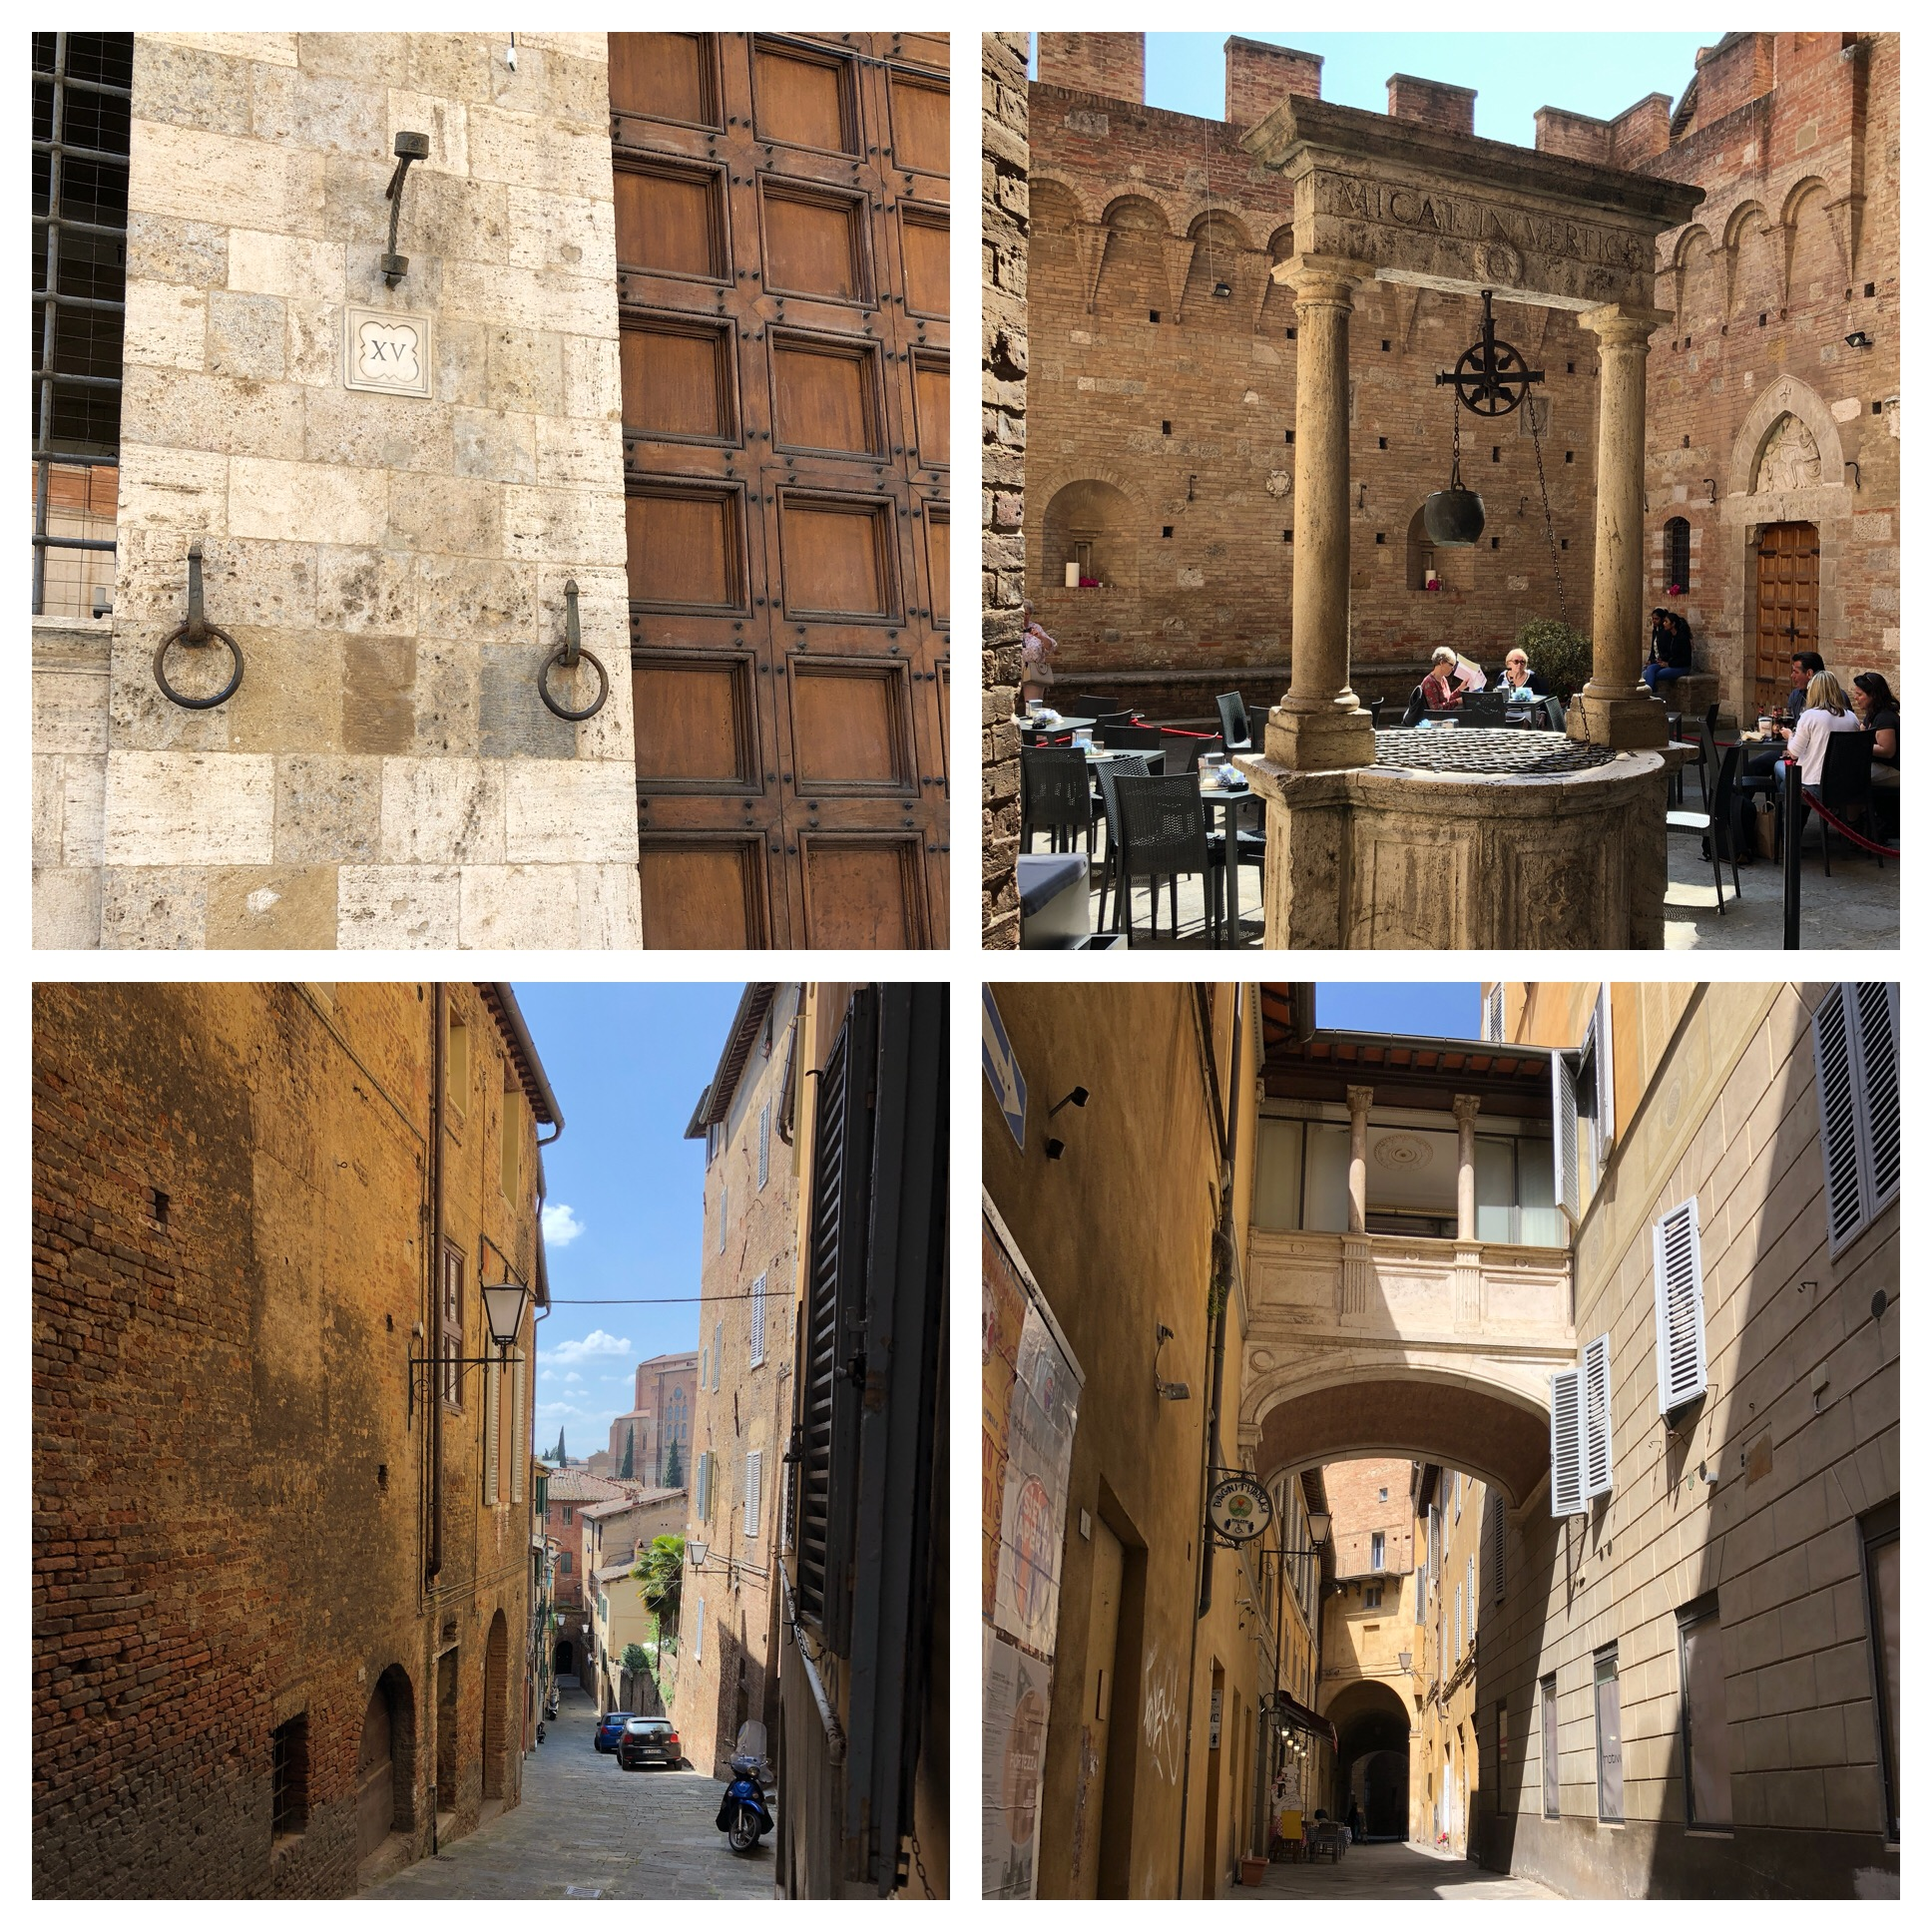 In the picture on the top left the round hooks are to tie up horses. Iron piece above them is for flags. They love to fly flags in Siena and each neighborhood (there are 17) have their own flags and symbol.